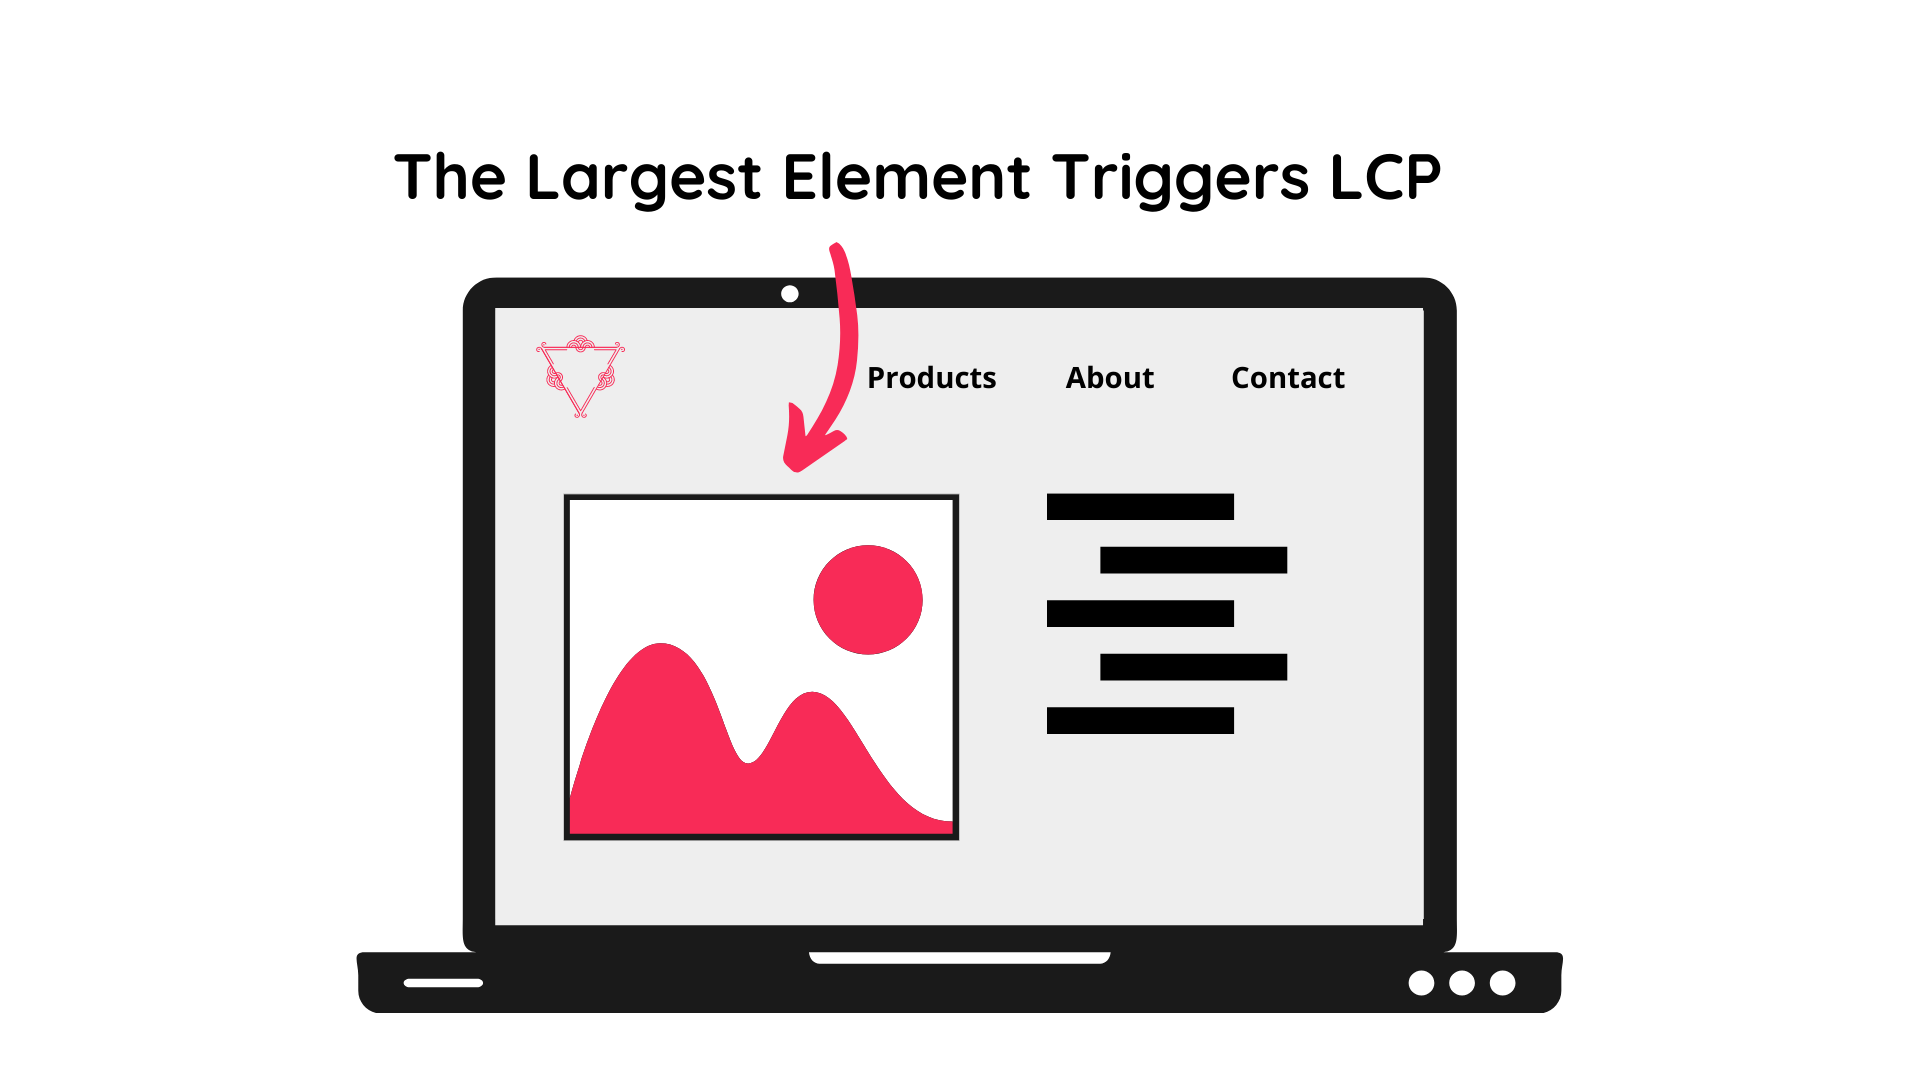 The largest element triggers lcp metric